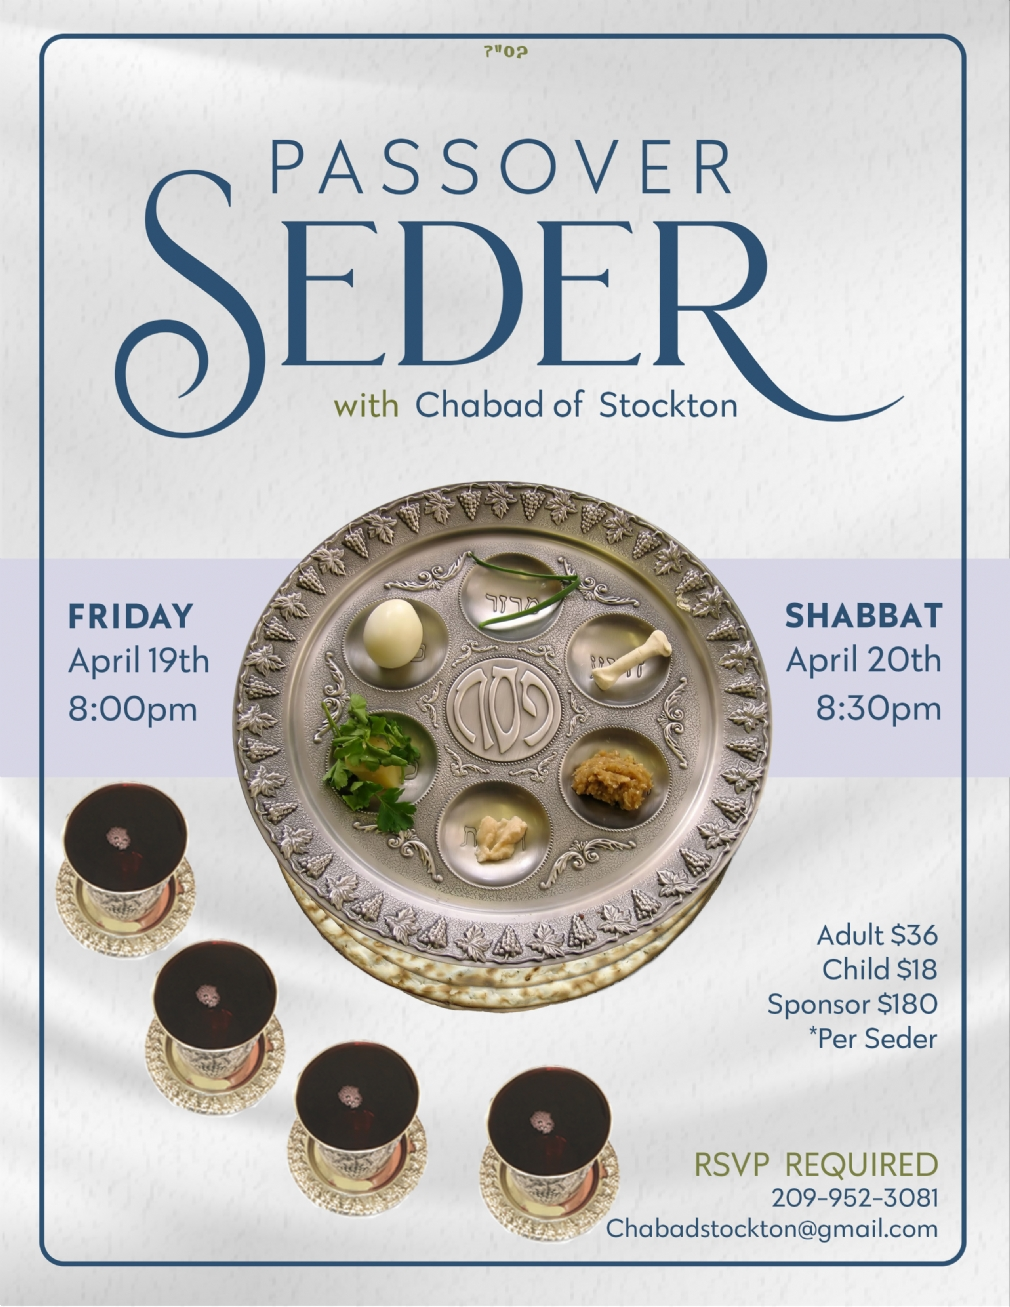 Passover Seder 2019 - Chabad of Stockton